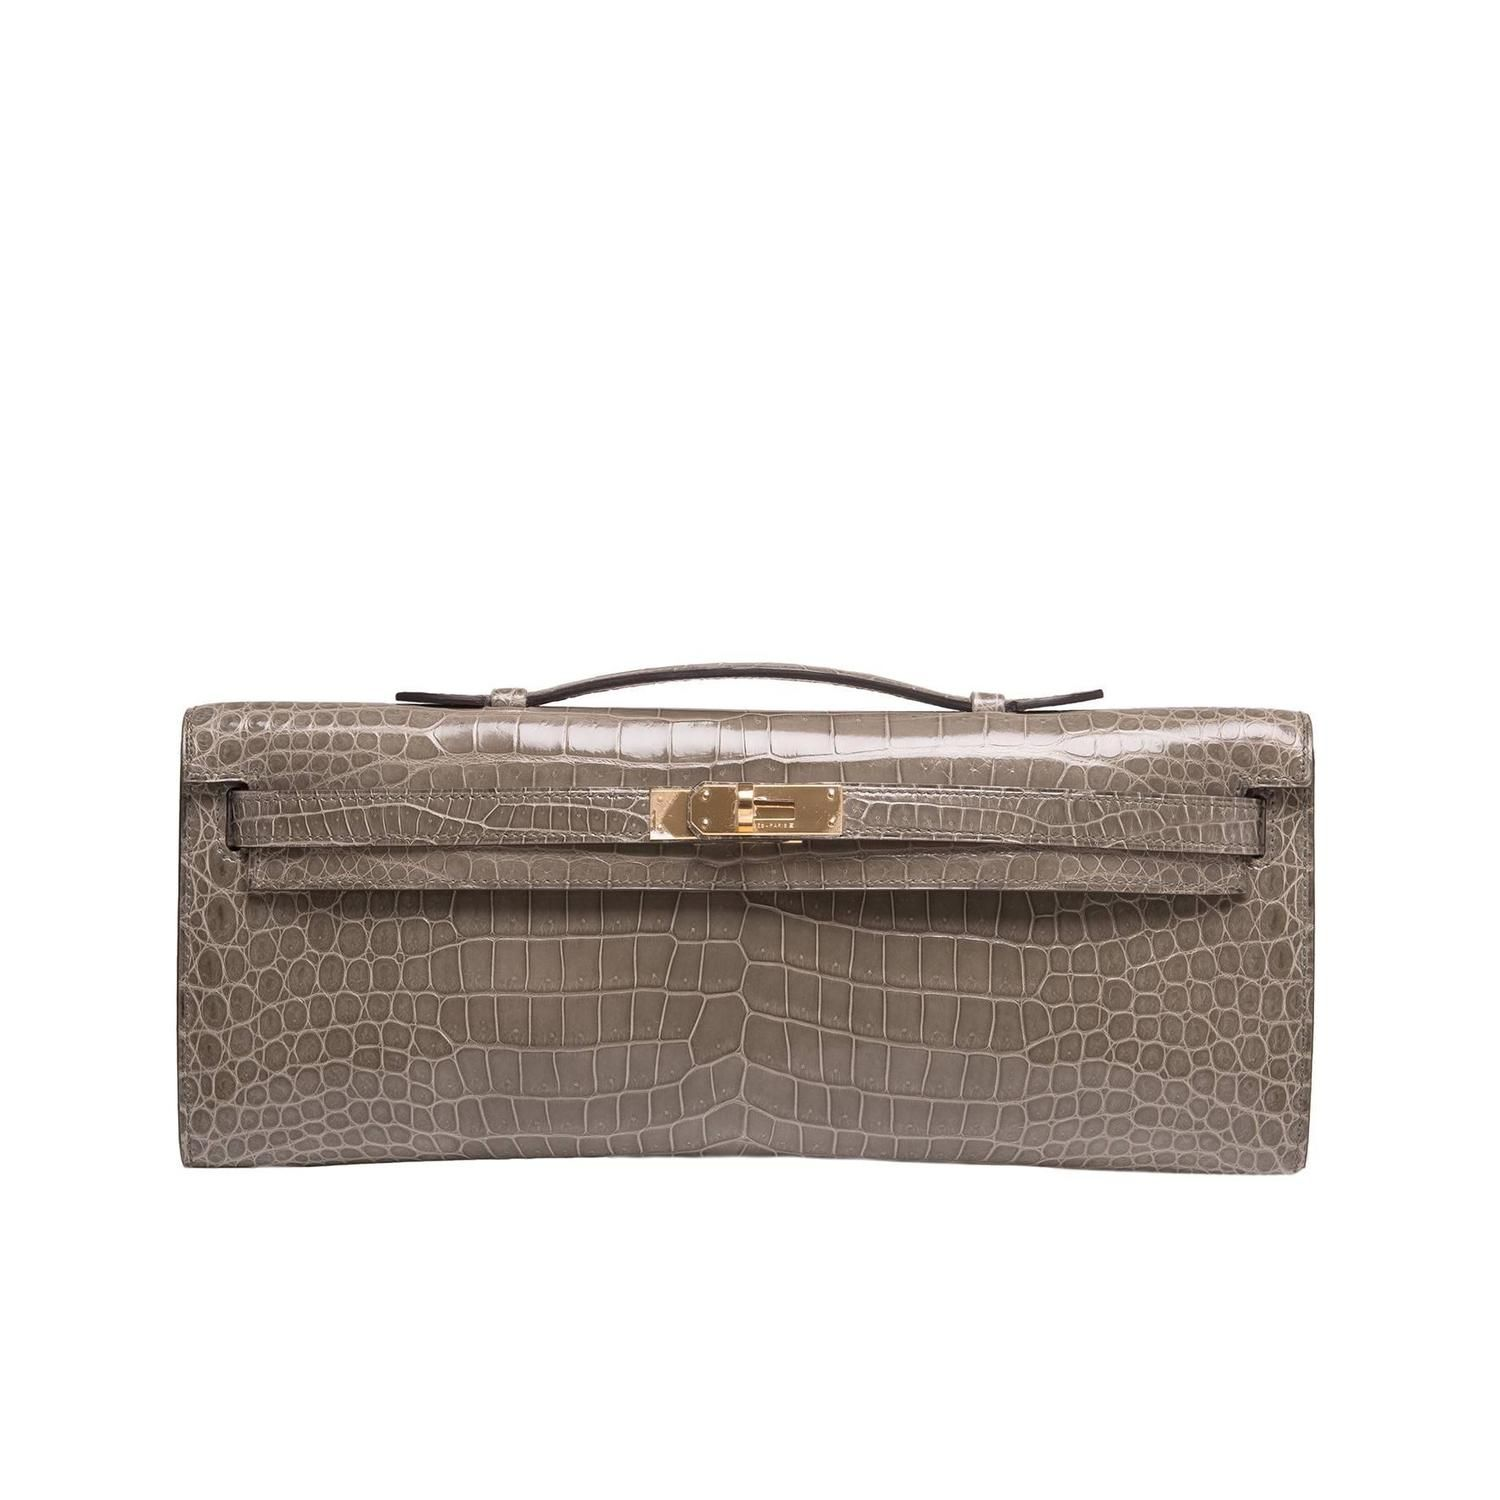 583ccbf46d ... order hermes gris tourterelle shiny porosus crocodile kelly cut from a  collection of rare vintage clutches